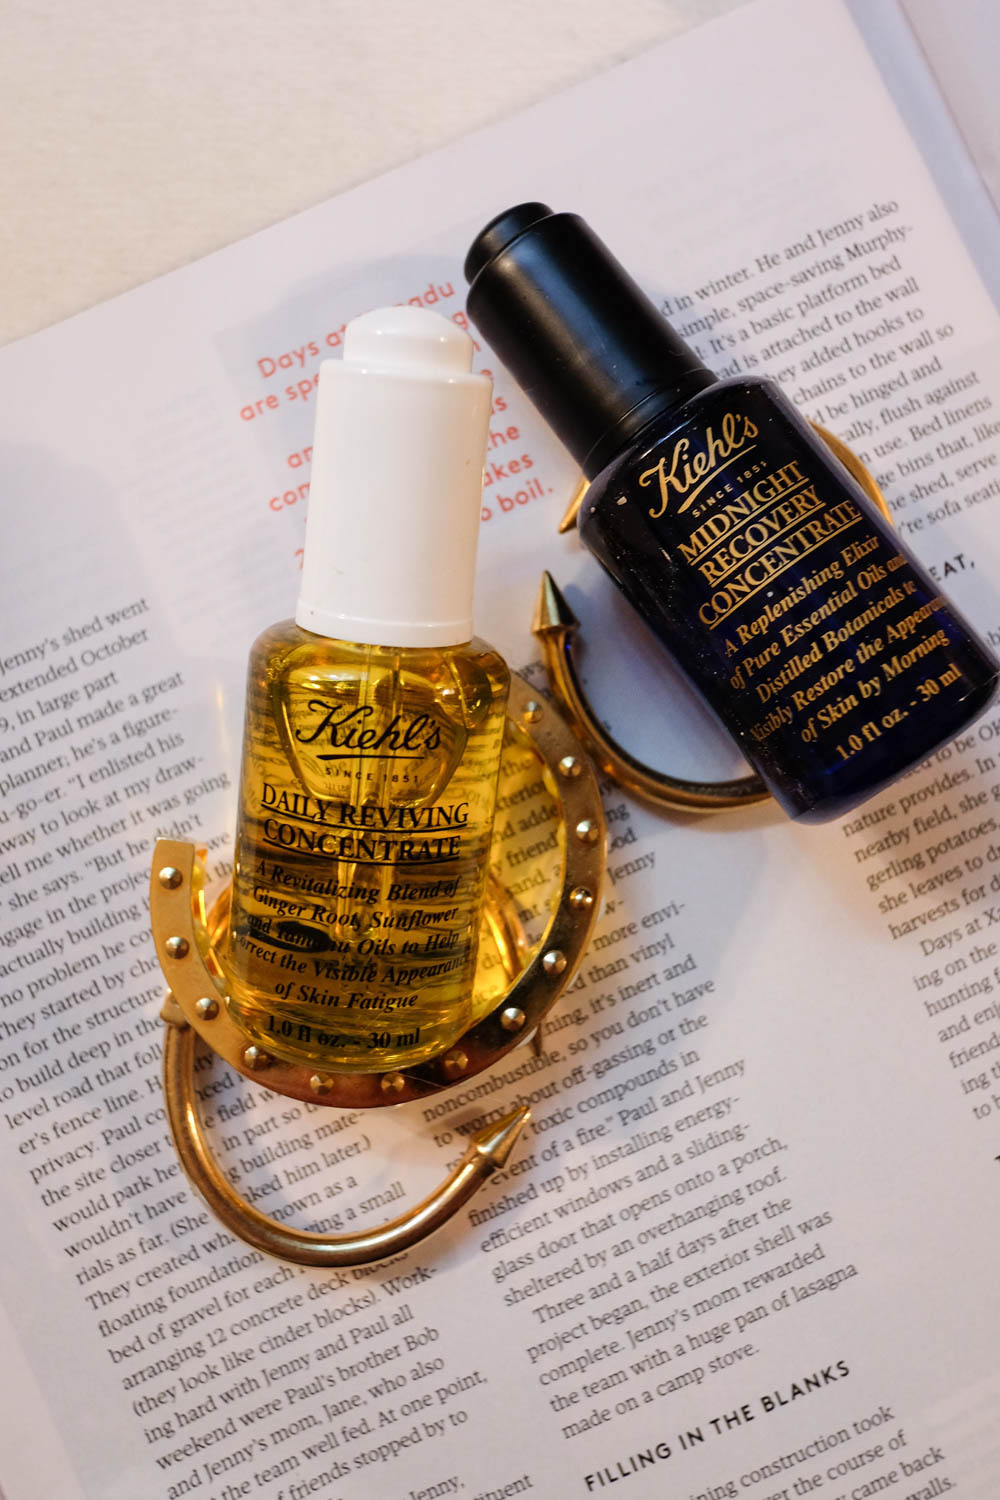 kiehls daily reviving concentrate review